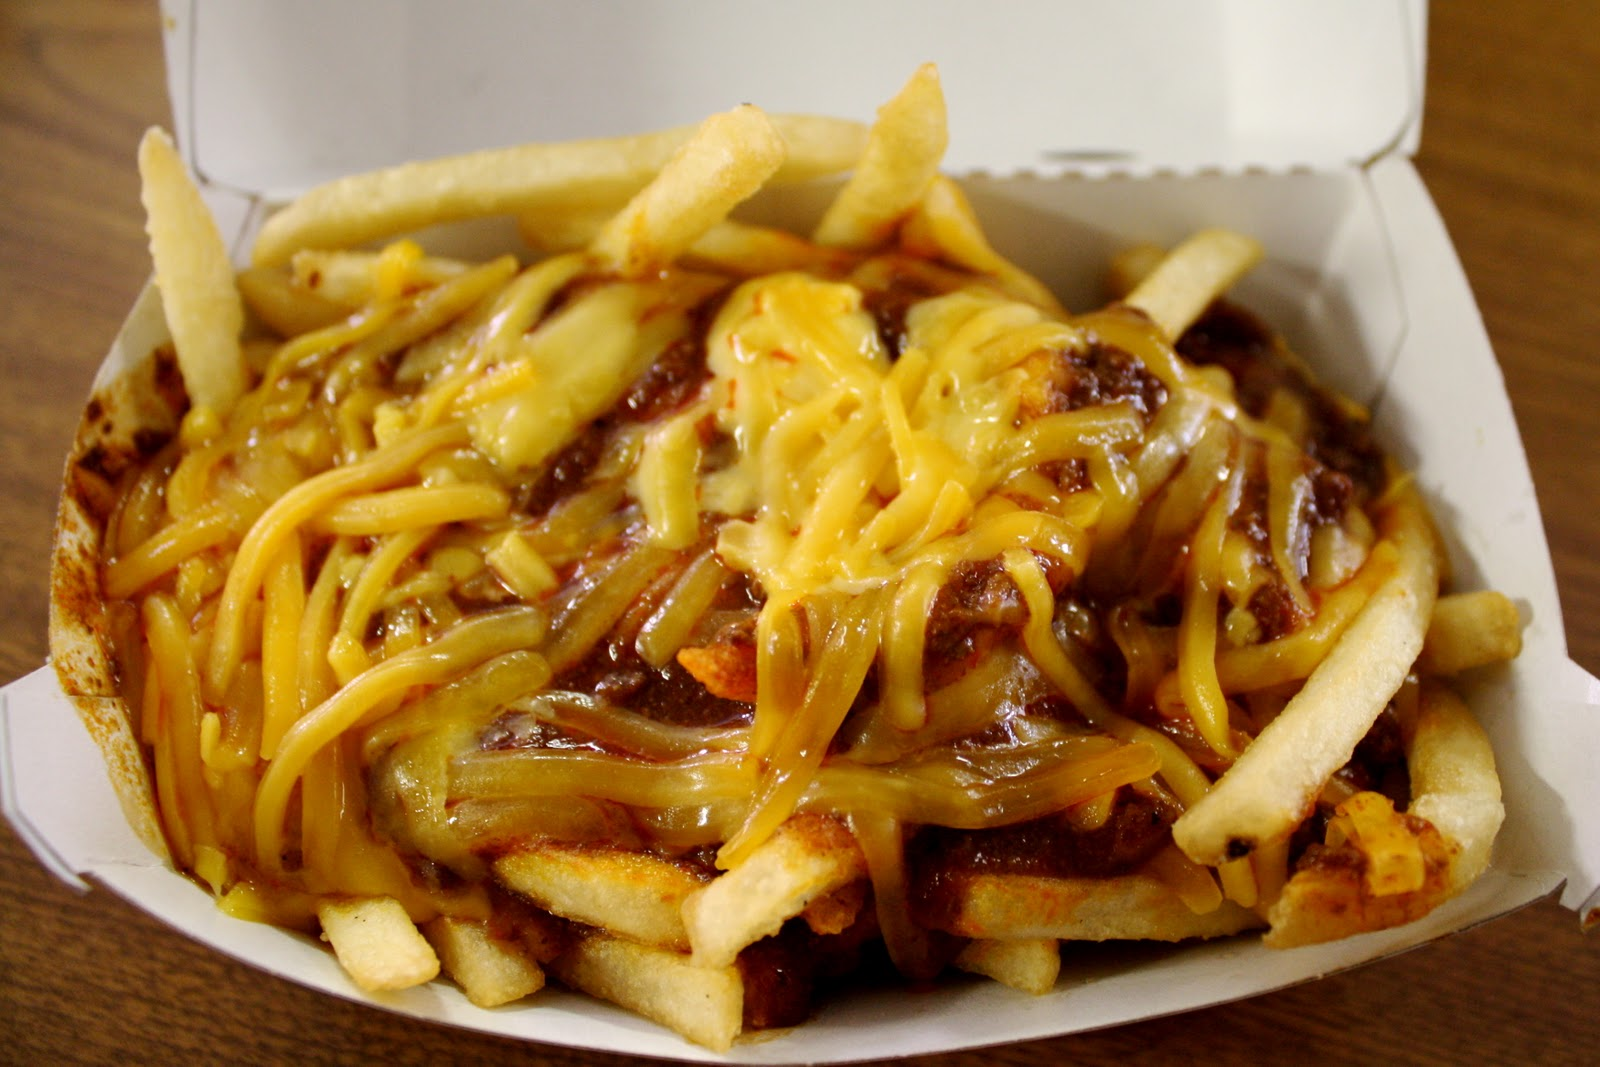 ... Feast: Fatburger Chili Cheese Fries: An Immovable Feast Turns 3